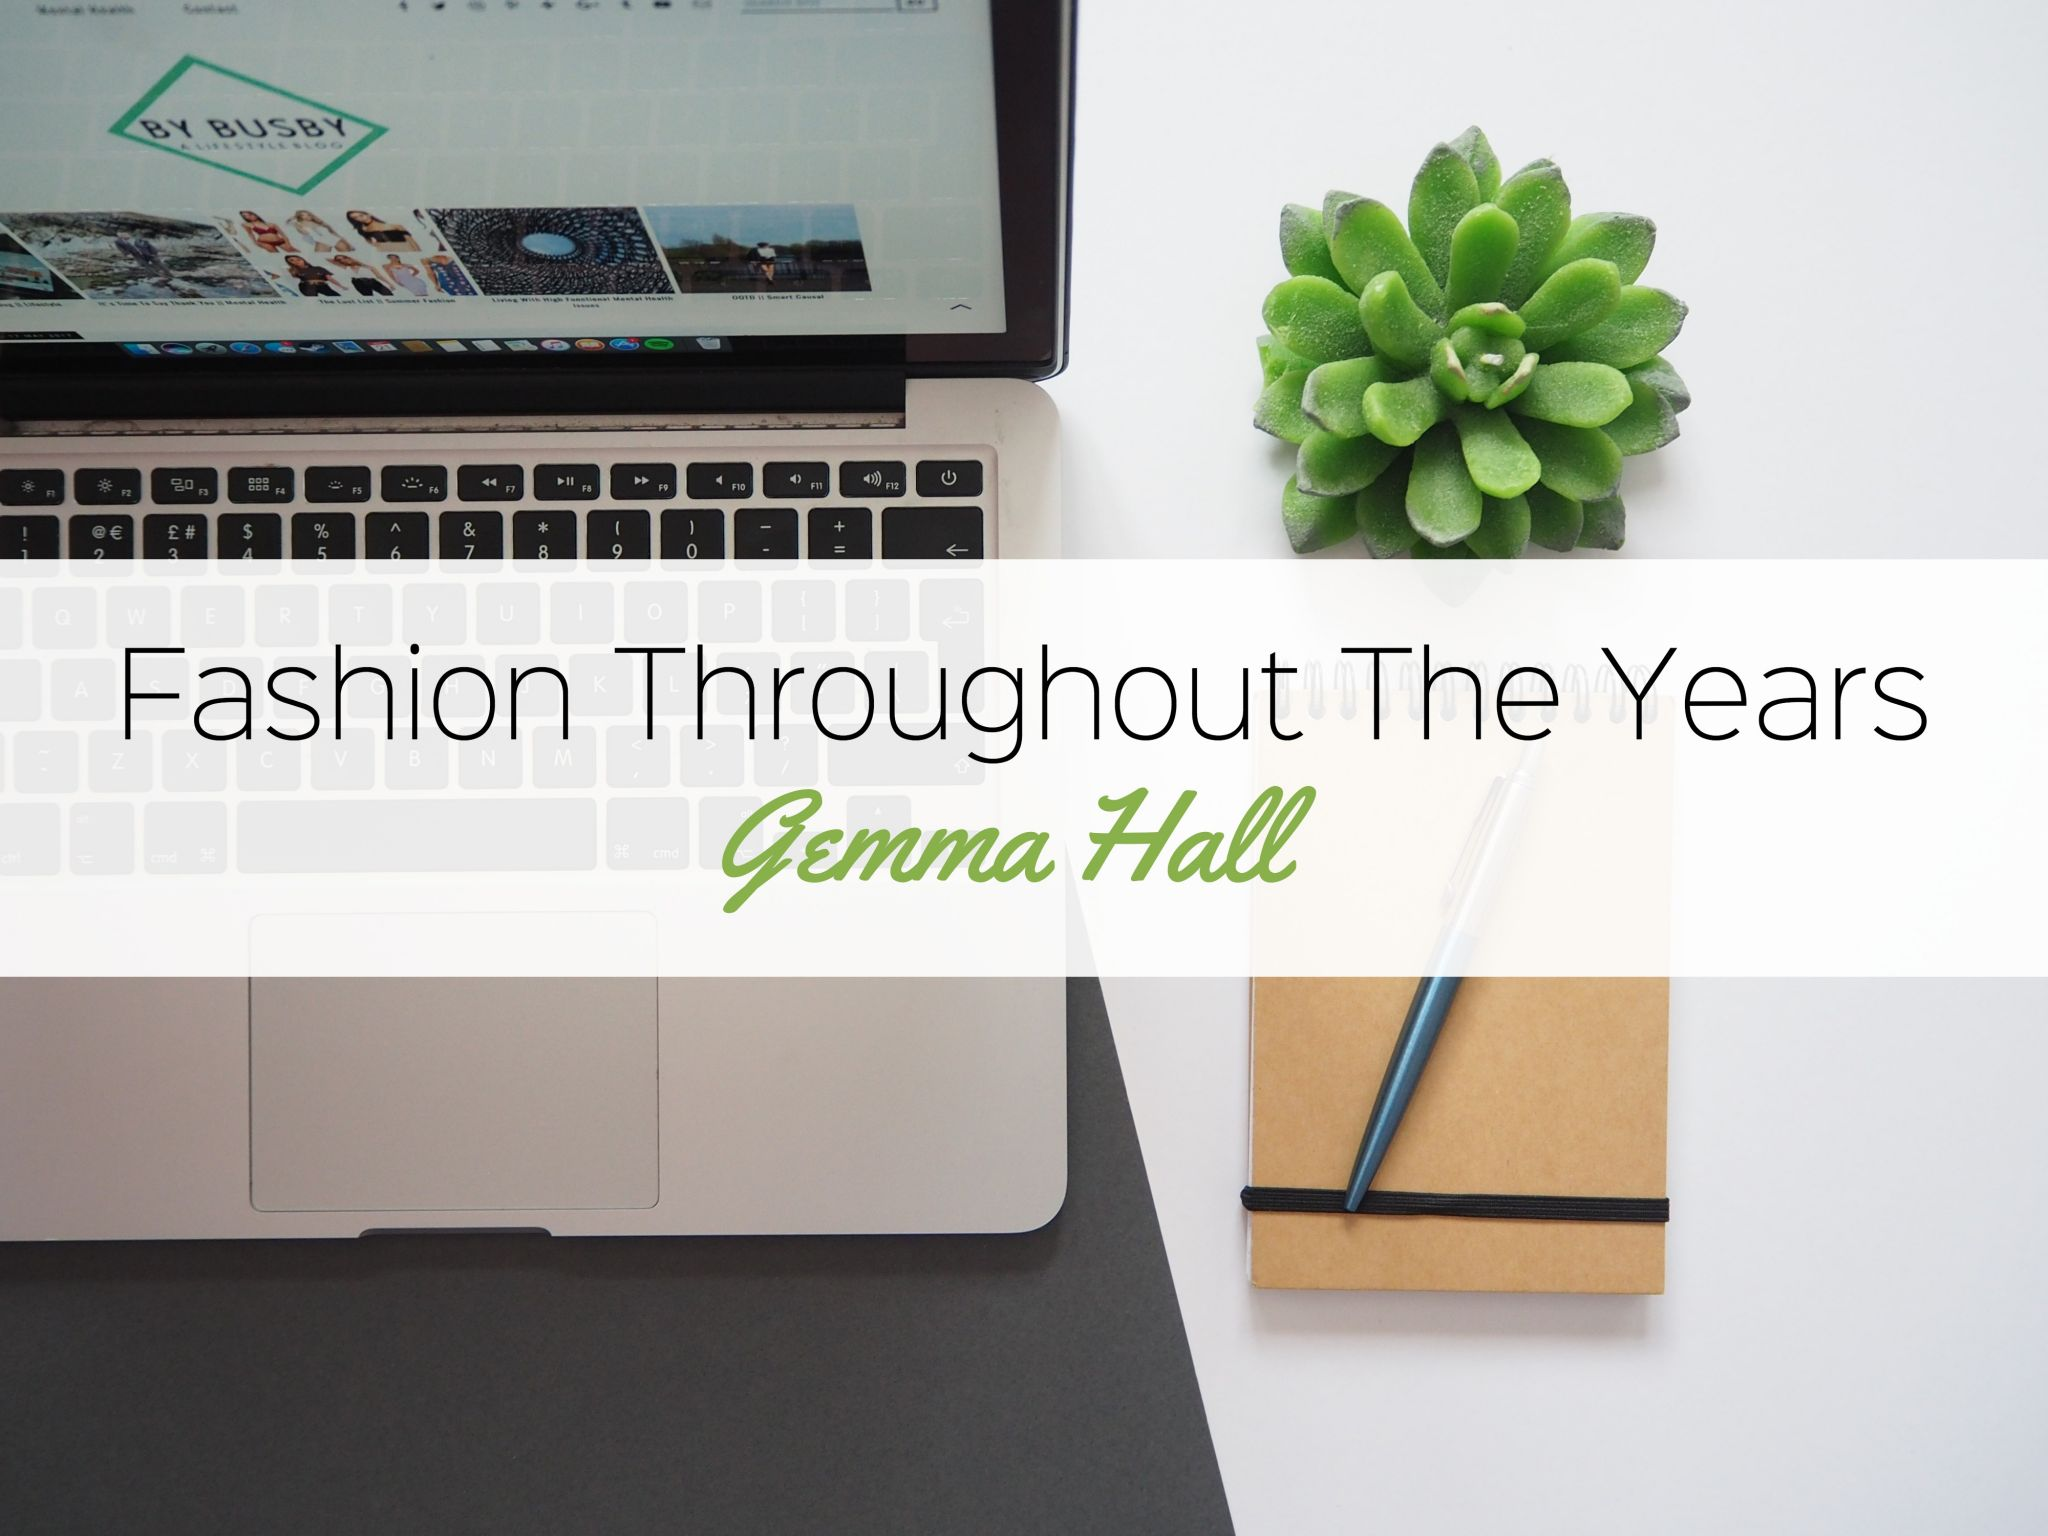 fashion throughout the years - Gemma hall